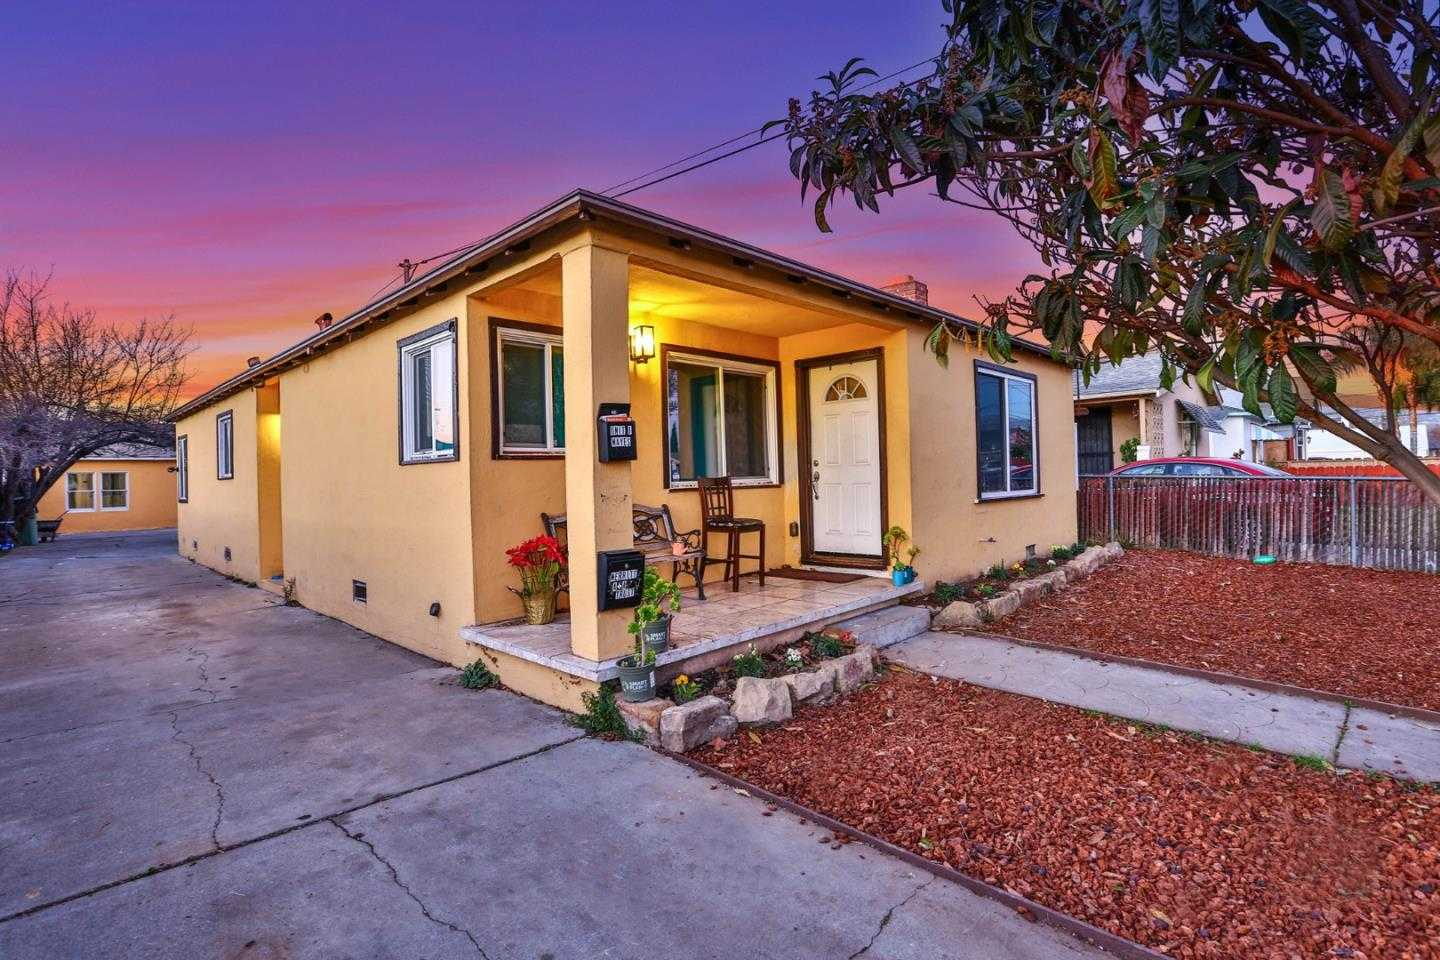 $998,888 - 5Br/3Ba -  for Sale in San Jose